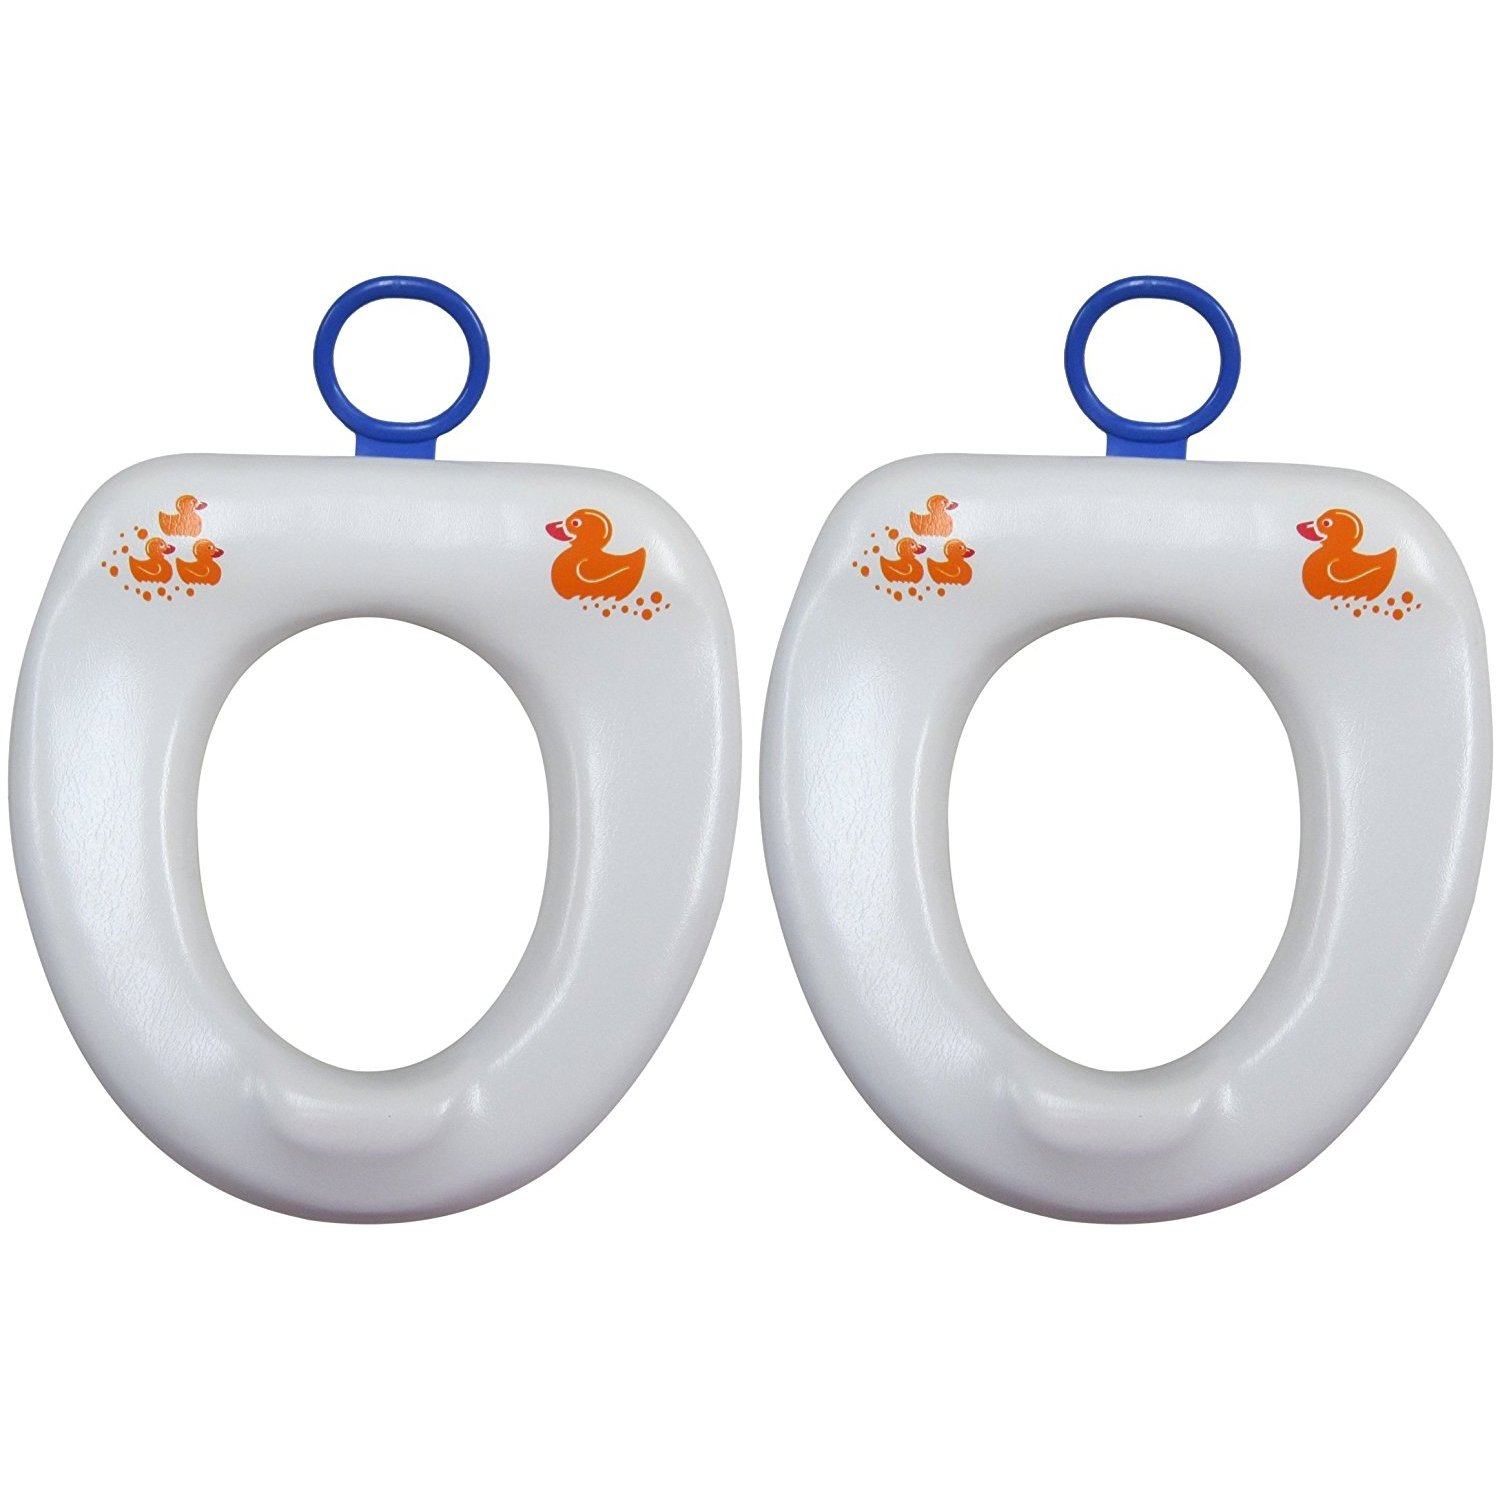 Mommy's Helper Contoured Cushie Tushie Potty Seat - 2 Count